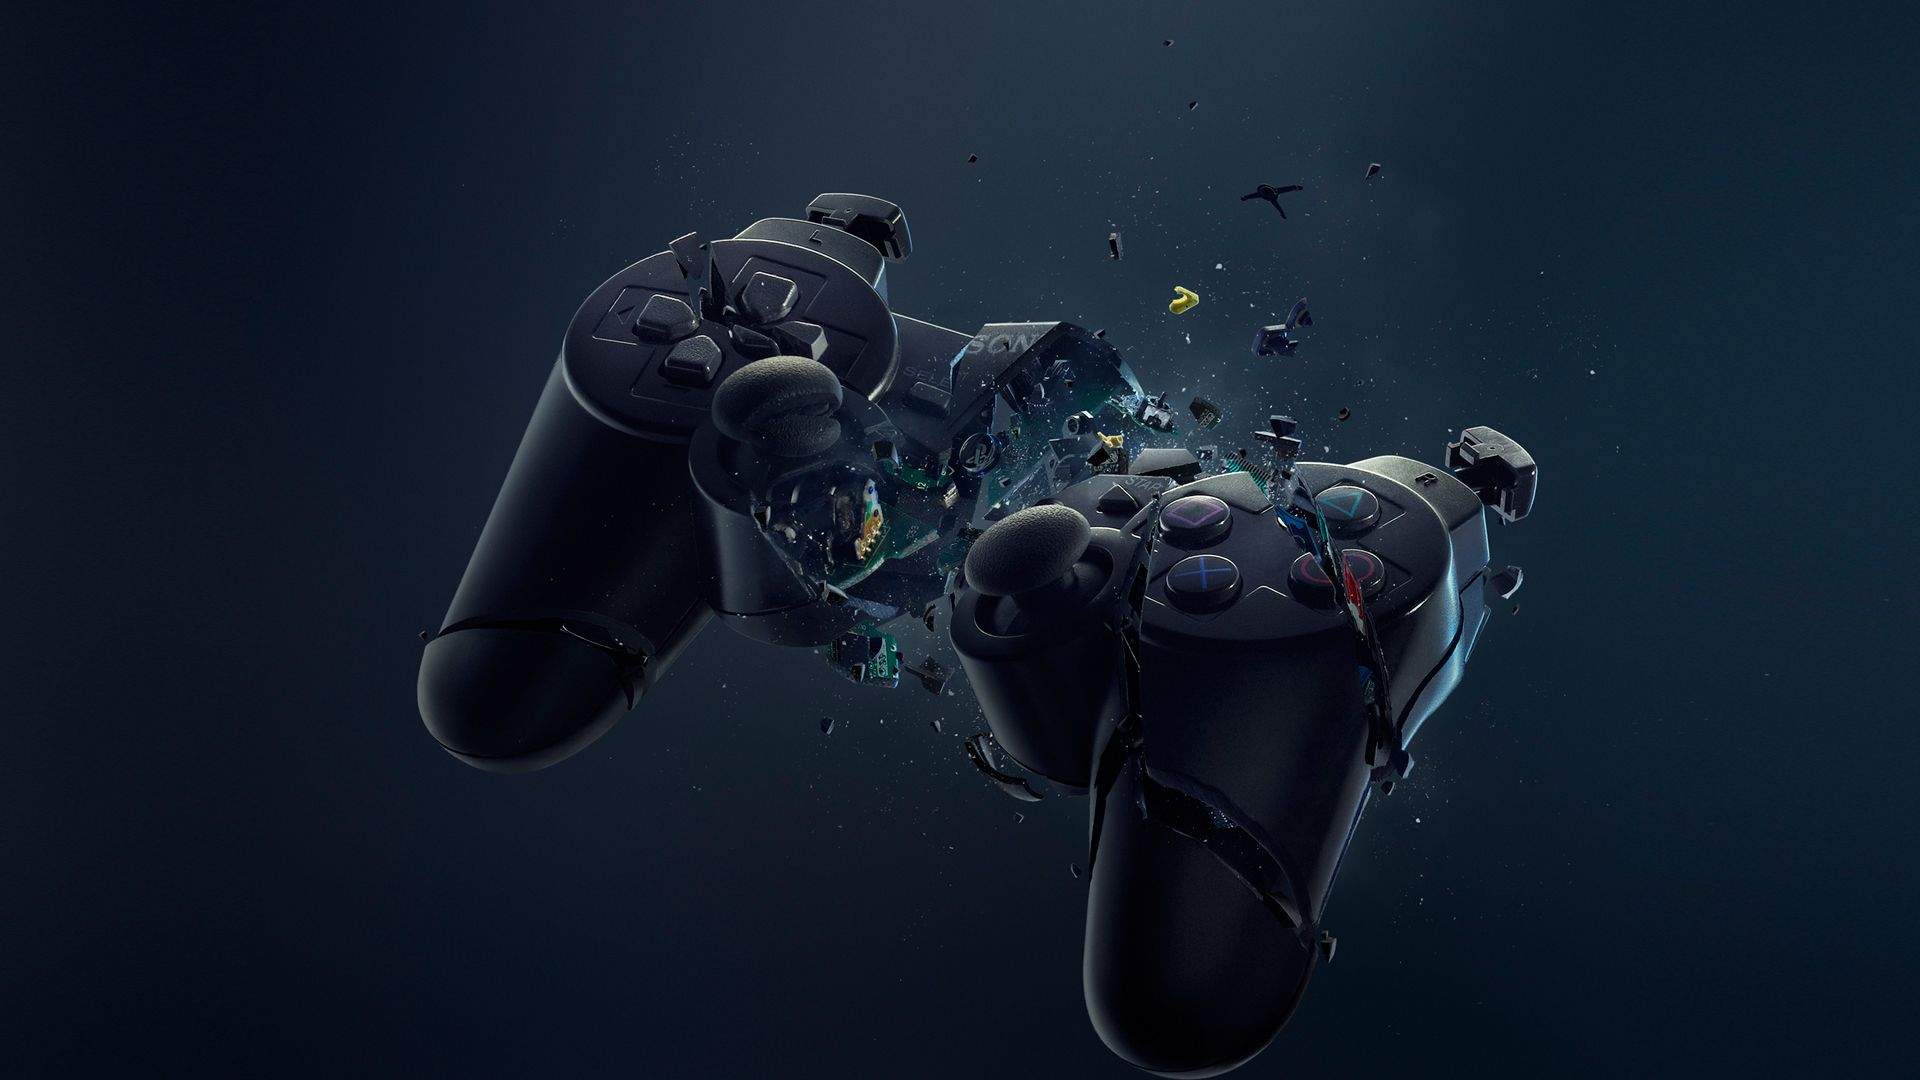 Gamer Wallpapers Hd 1920x1080 Group 81